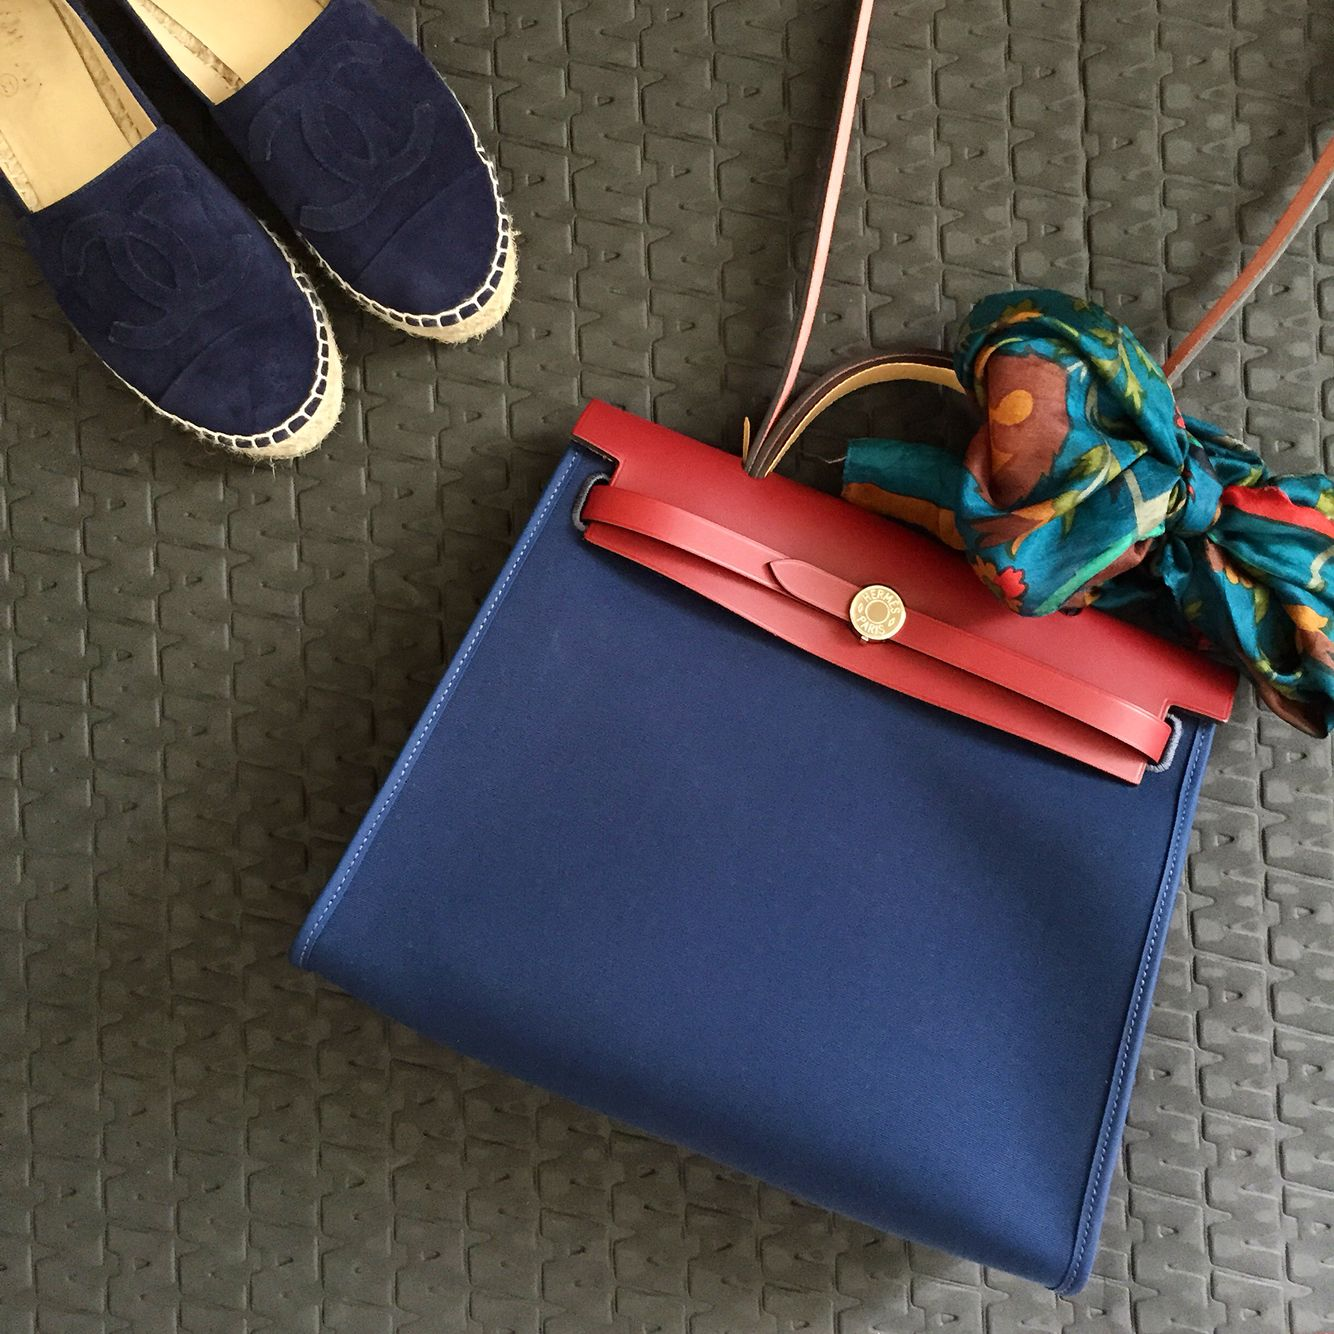 2a2180b6b1 Hermes Herbag Navy and Chanel Navy Suede Espadrilles PSL